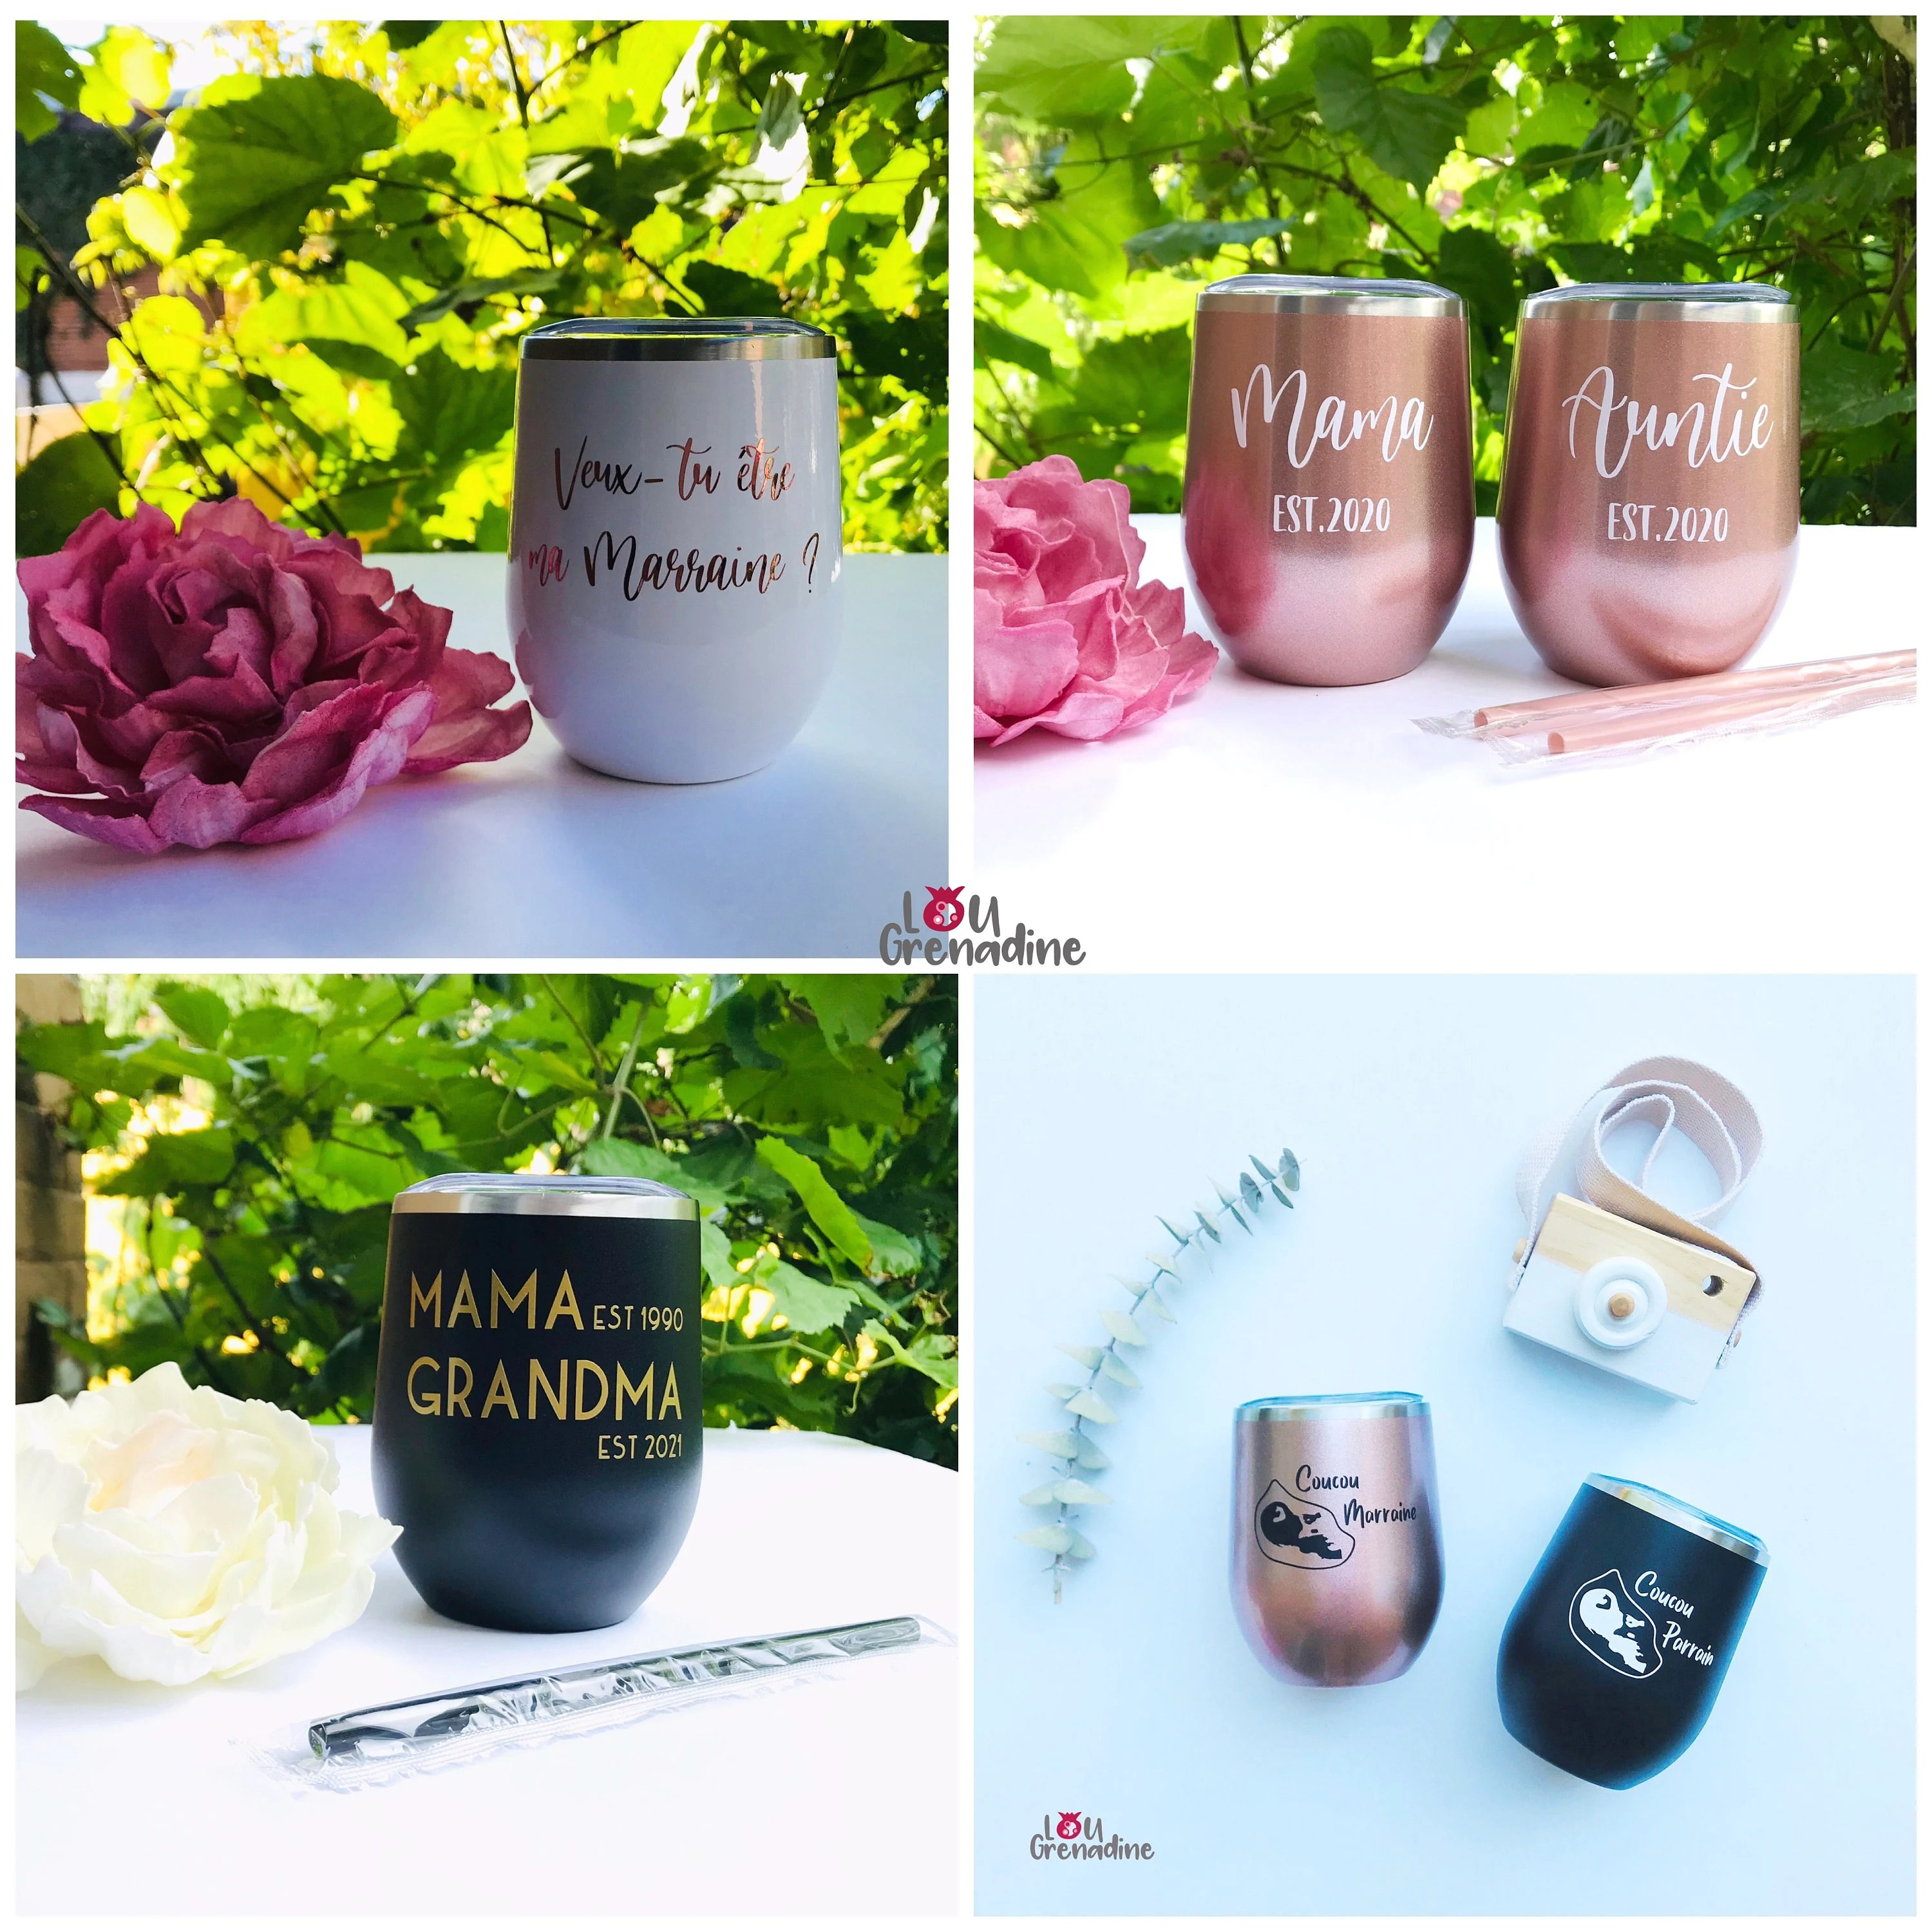 Personalized wine tumblers bachelorette party Bridesmaid image 3